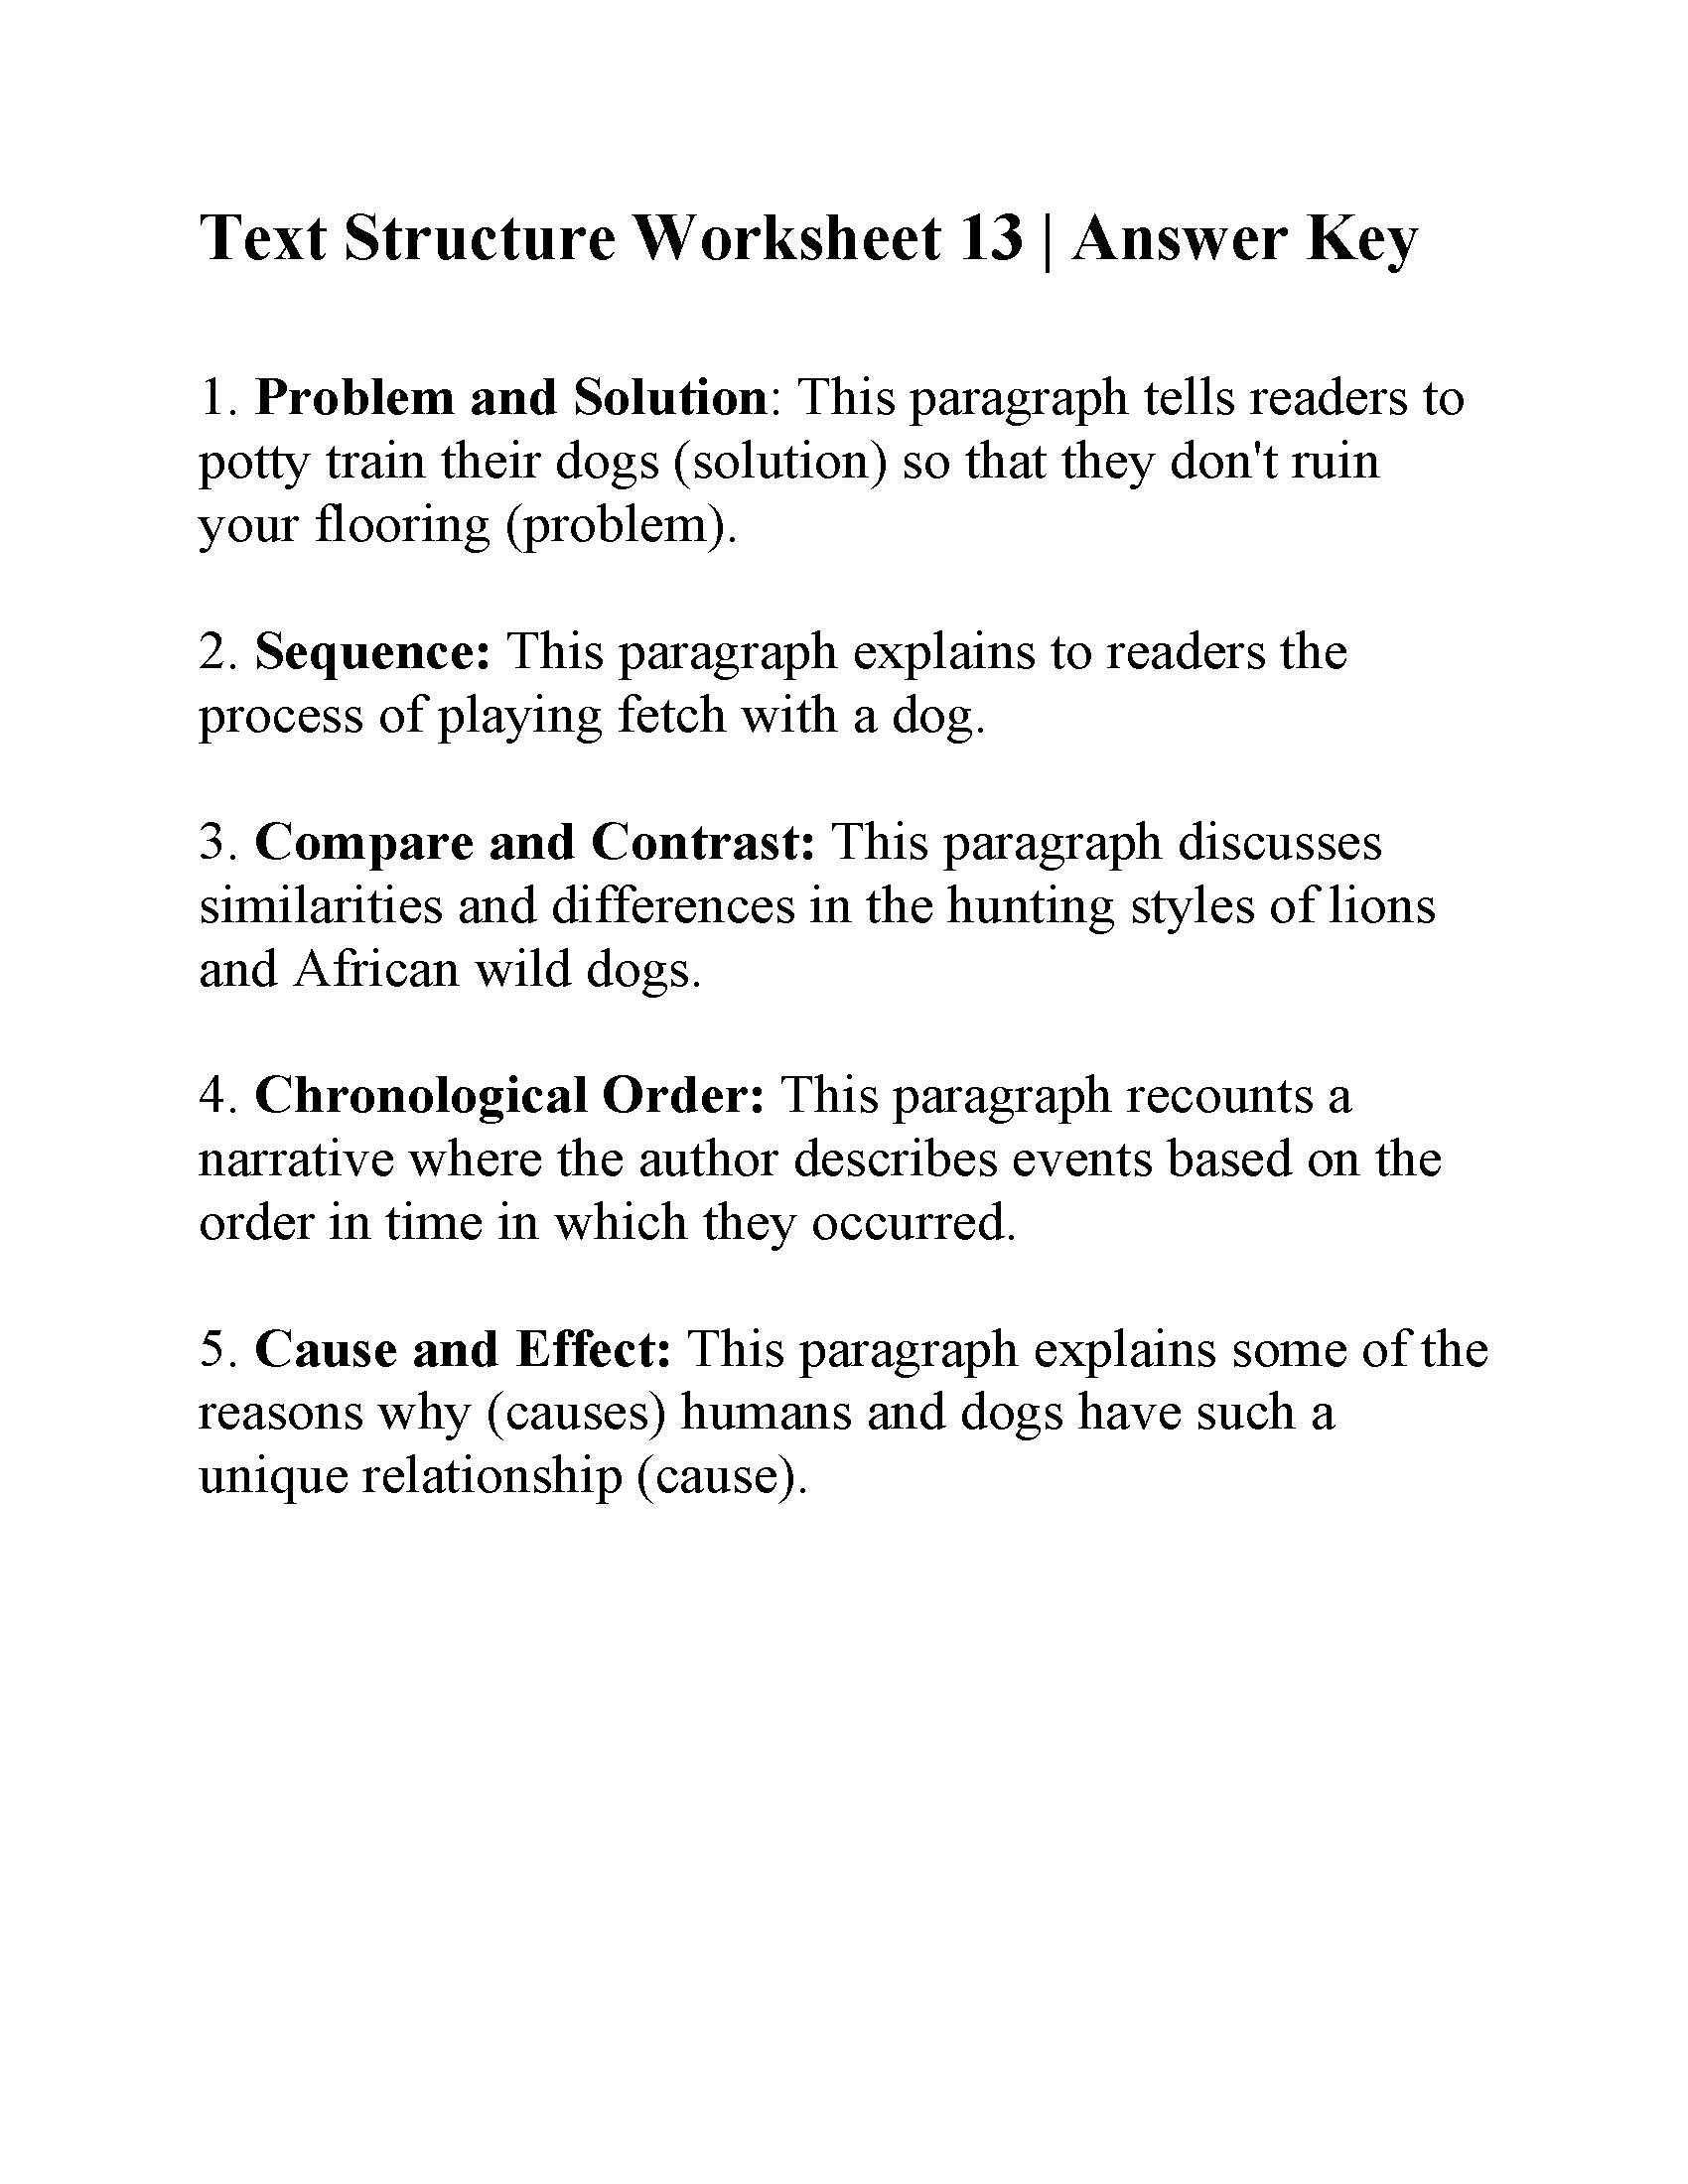 Text Structure Worksheets Grade 4 Text Structure Worksheet 13